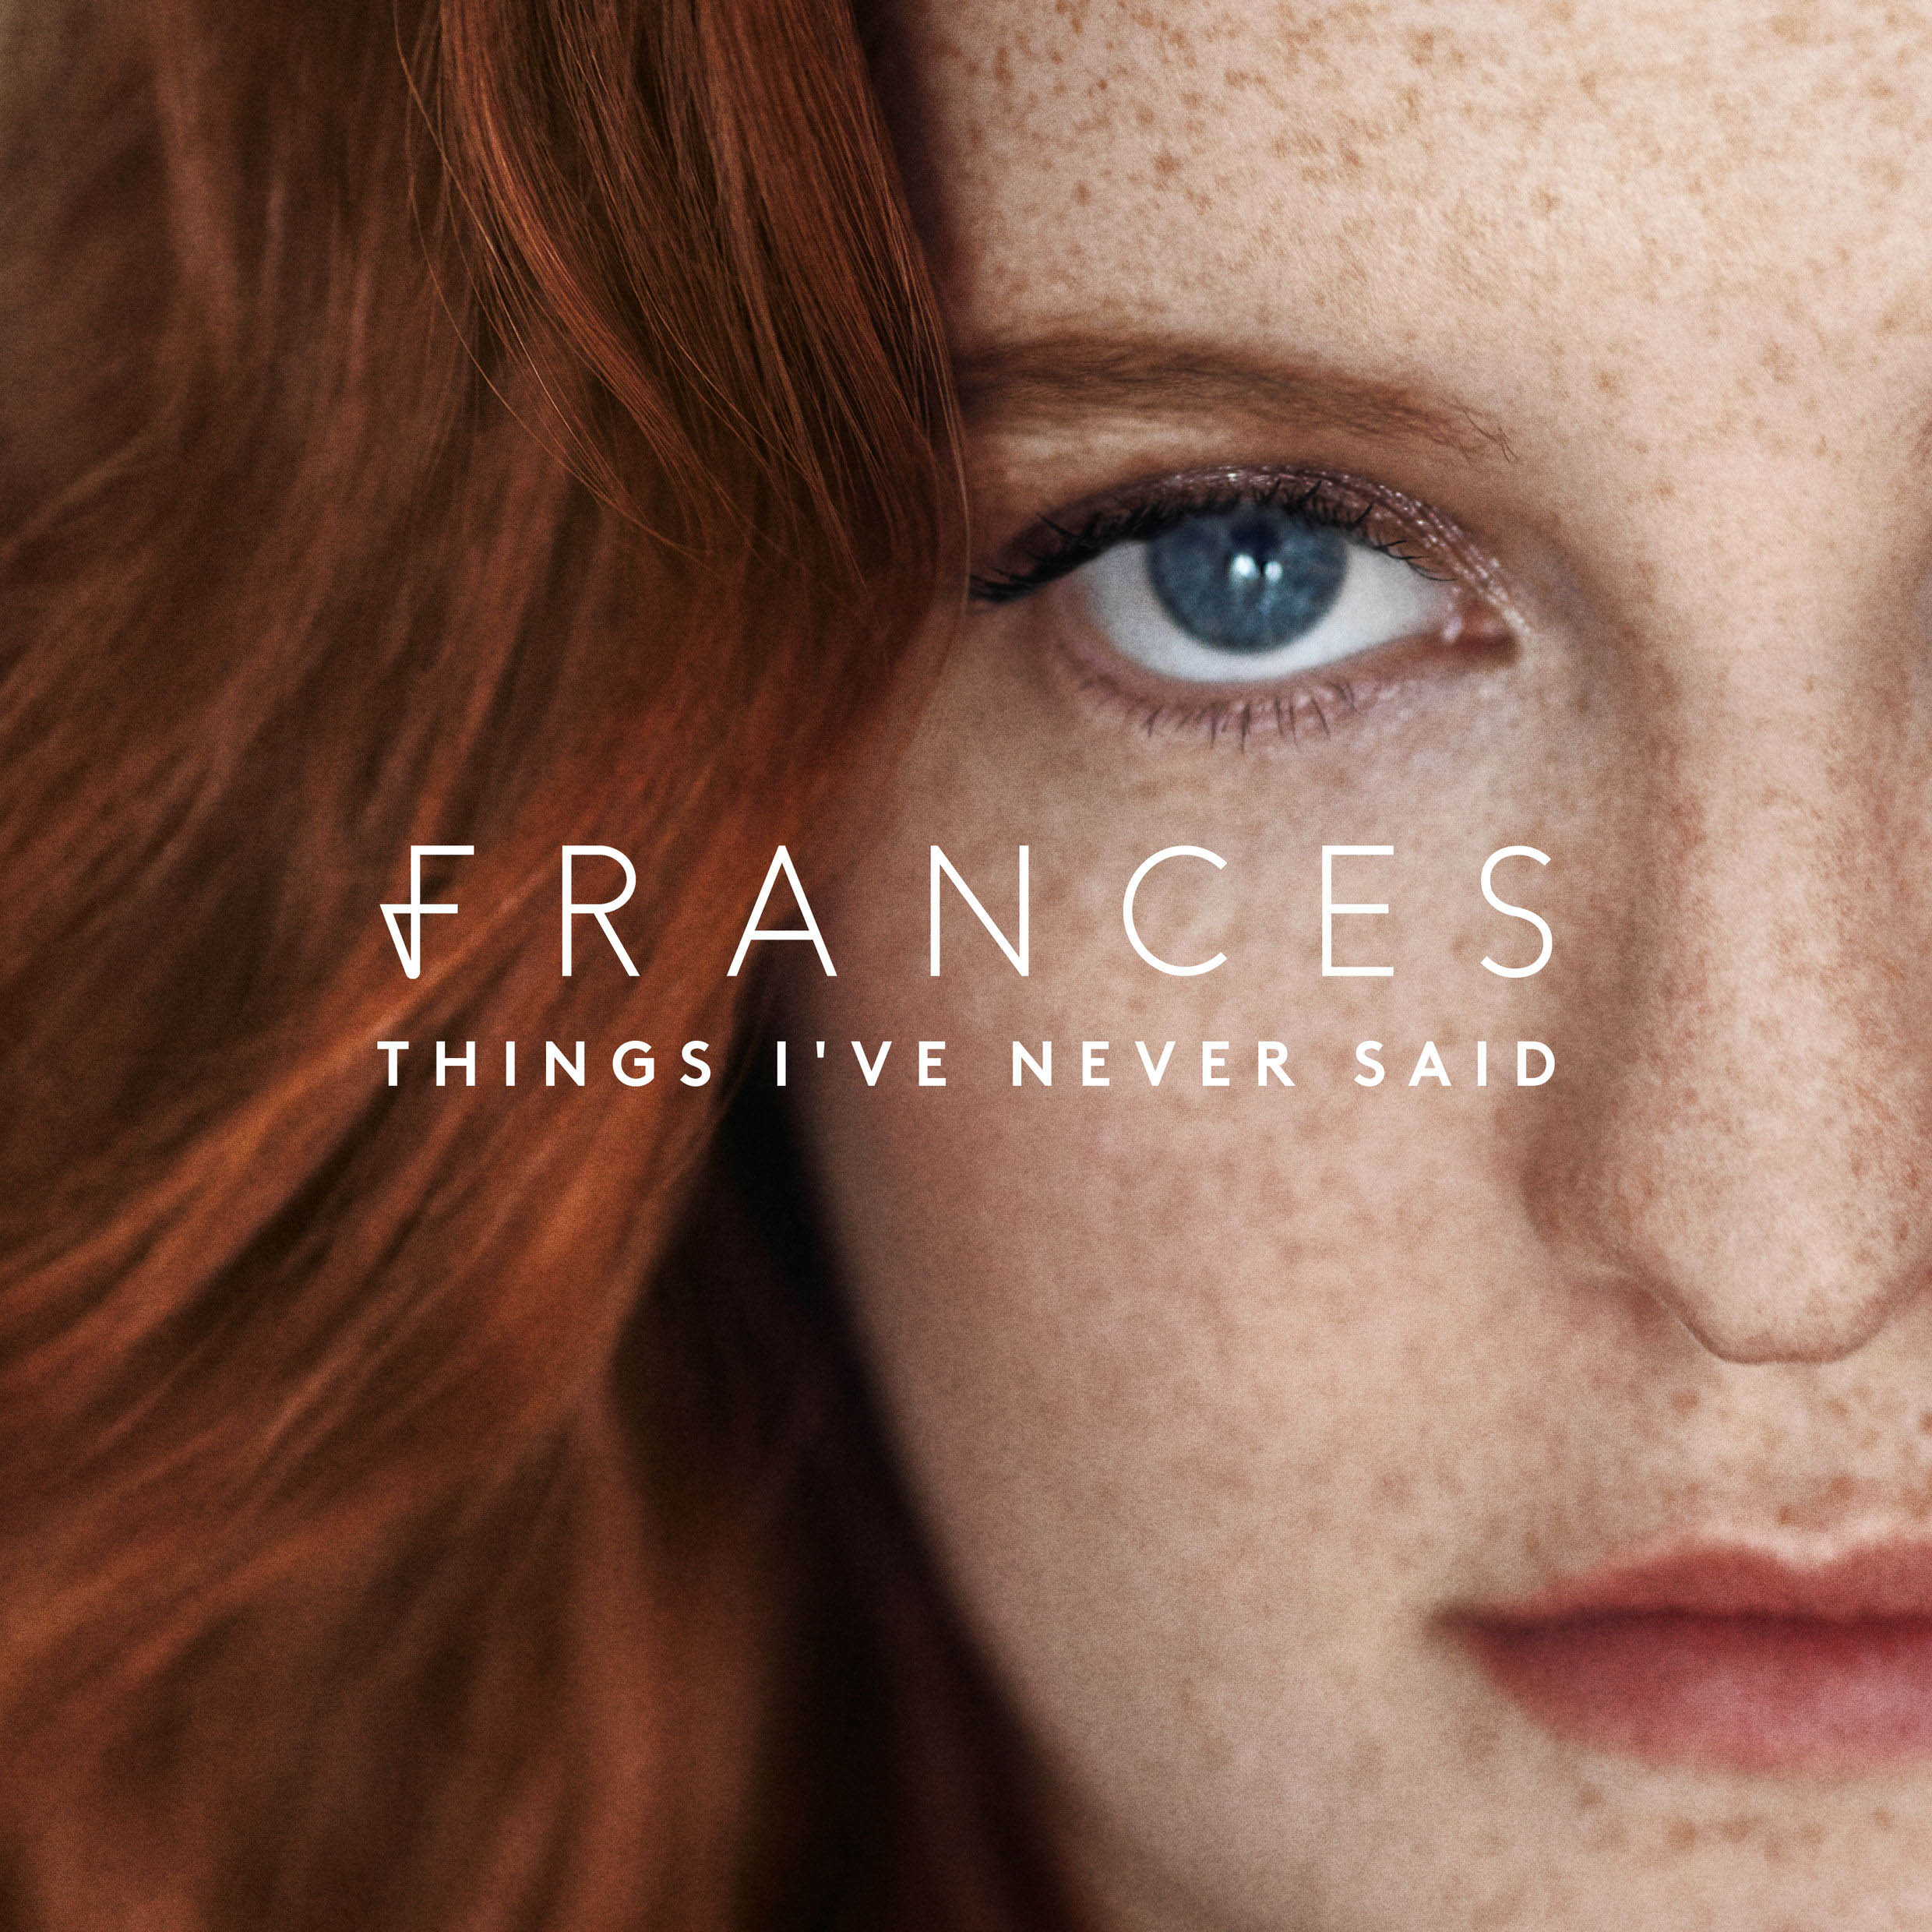 Frances-Things-Ive-Never-Said-2017-2480x2480